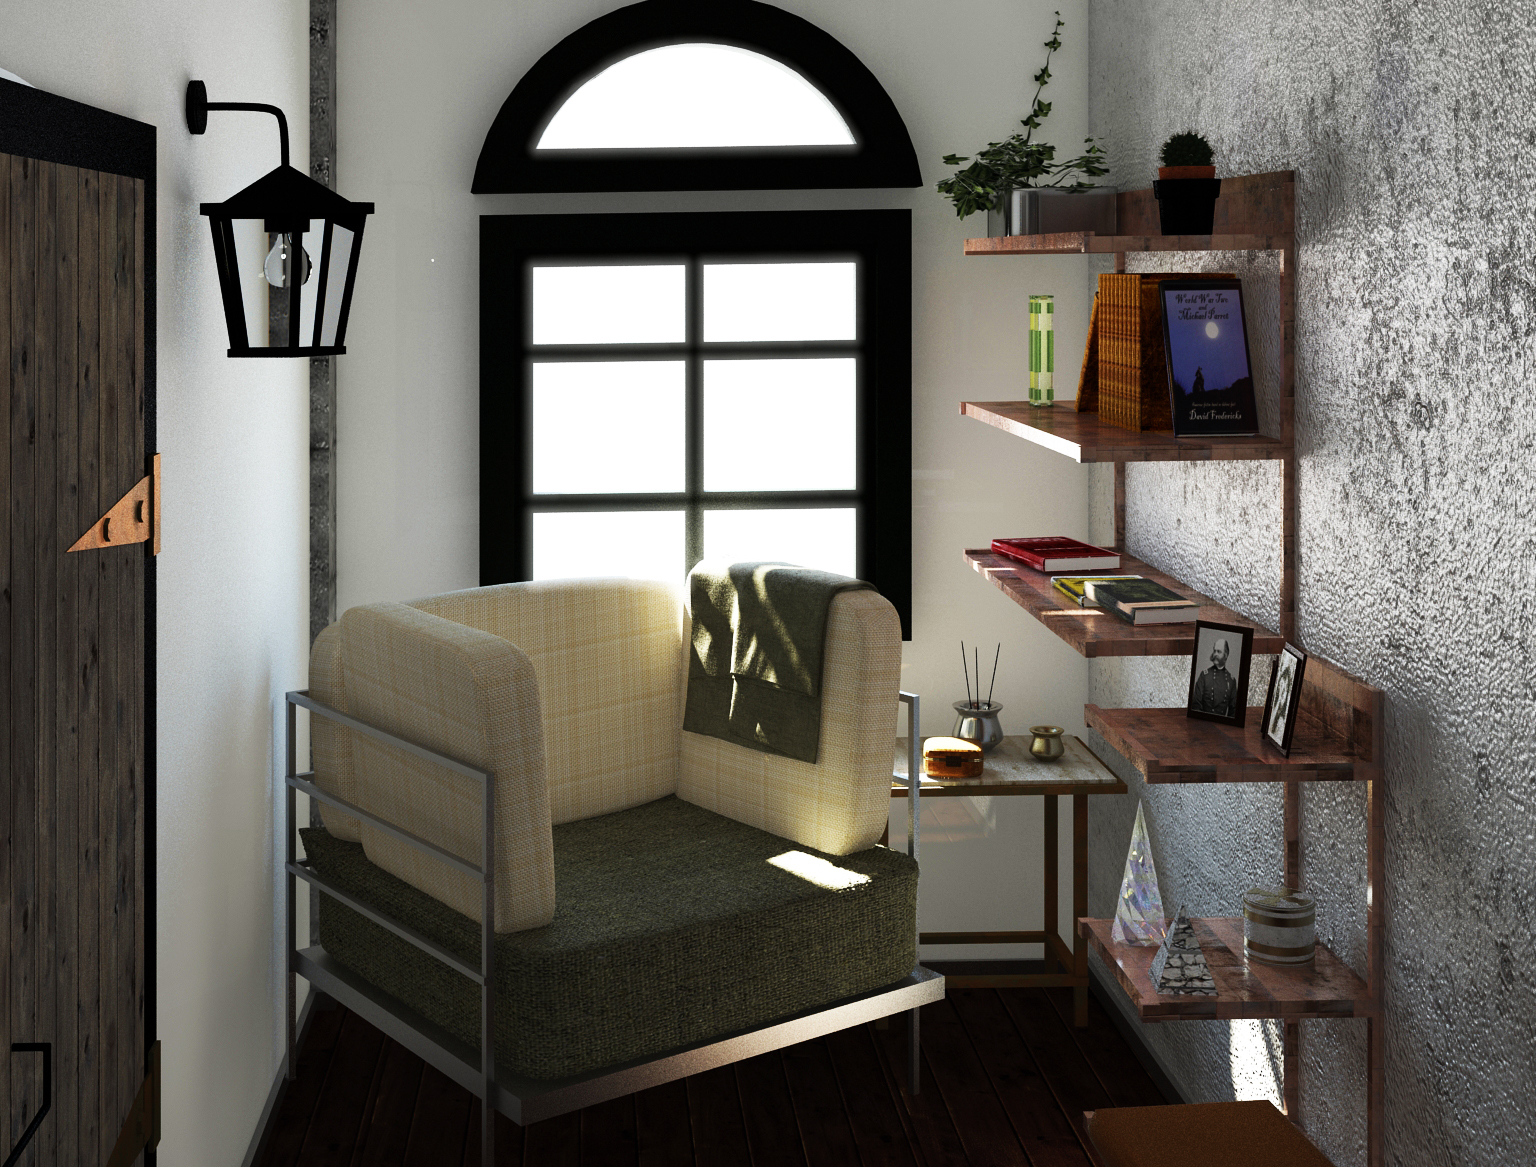 Interior renders 3D model - Reading corner study